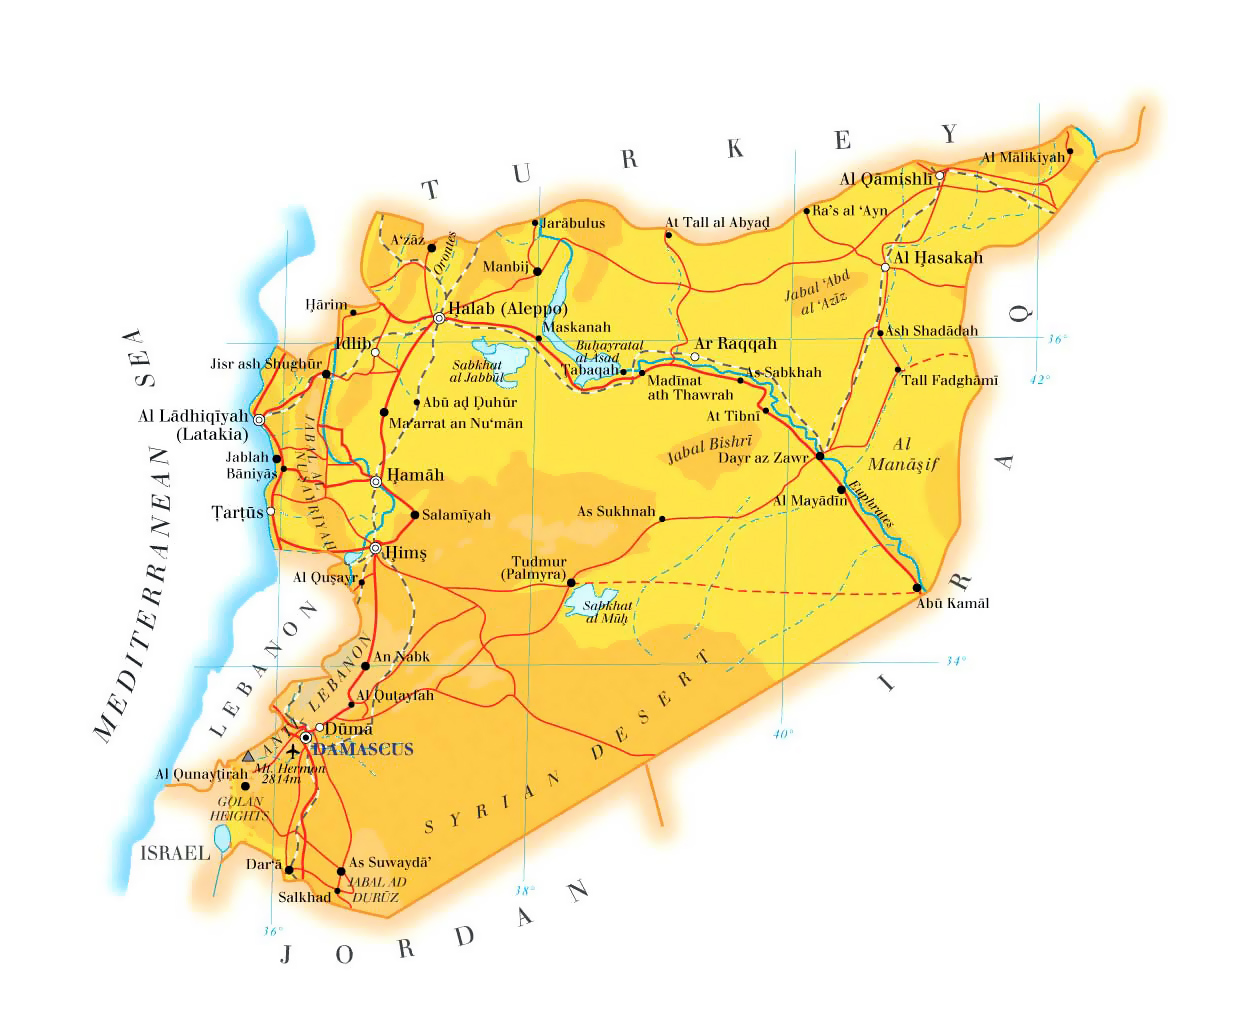 Maps of syria detailed map of syria in english tourist map of detailed elevation map of syria with roads cities and airports gumiabroncs Images